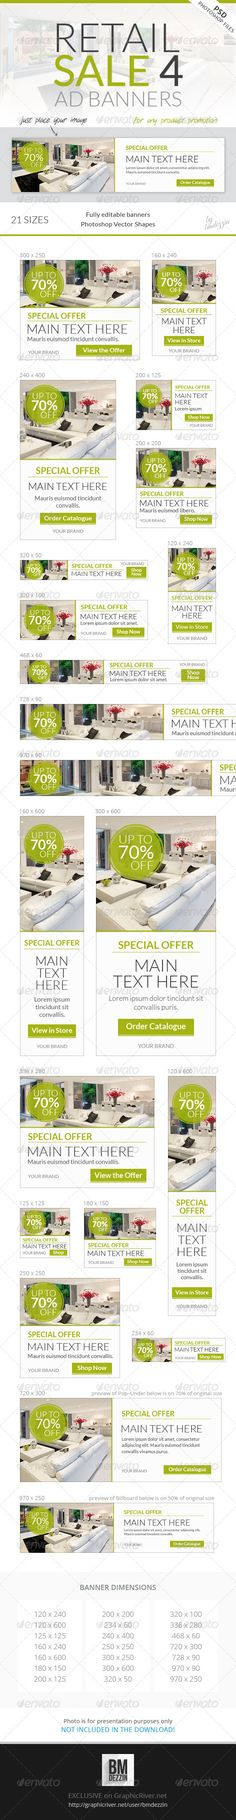 Retail Sale 4 Web Ad Banners Template PSD | Buy and Download: http://graphicriver.net/item/retail-sale-4-web-ad-banners/7157676?WT.ac=category_thumb&WT.z_author=bmdezzin&ref=ksioks